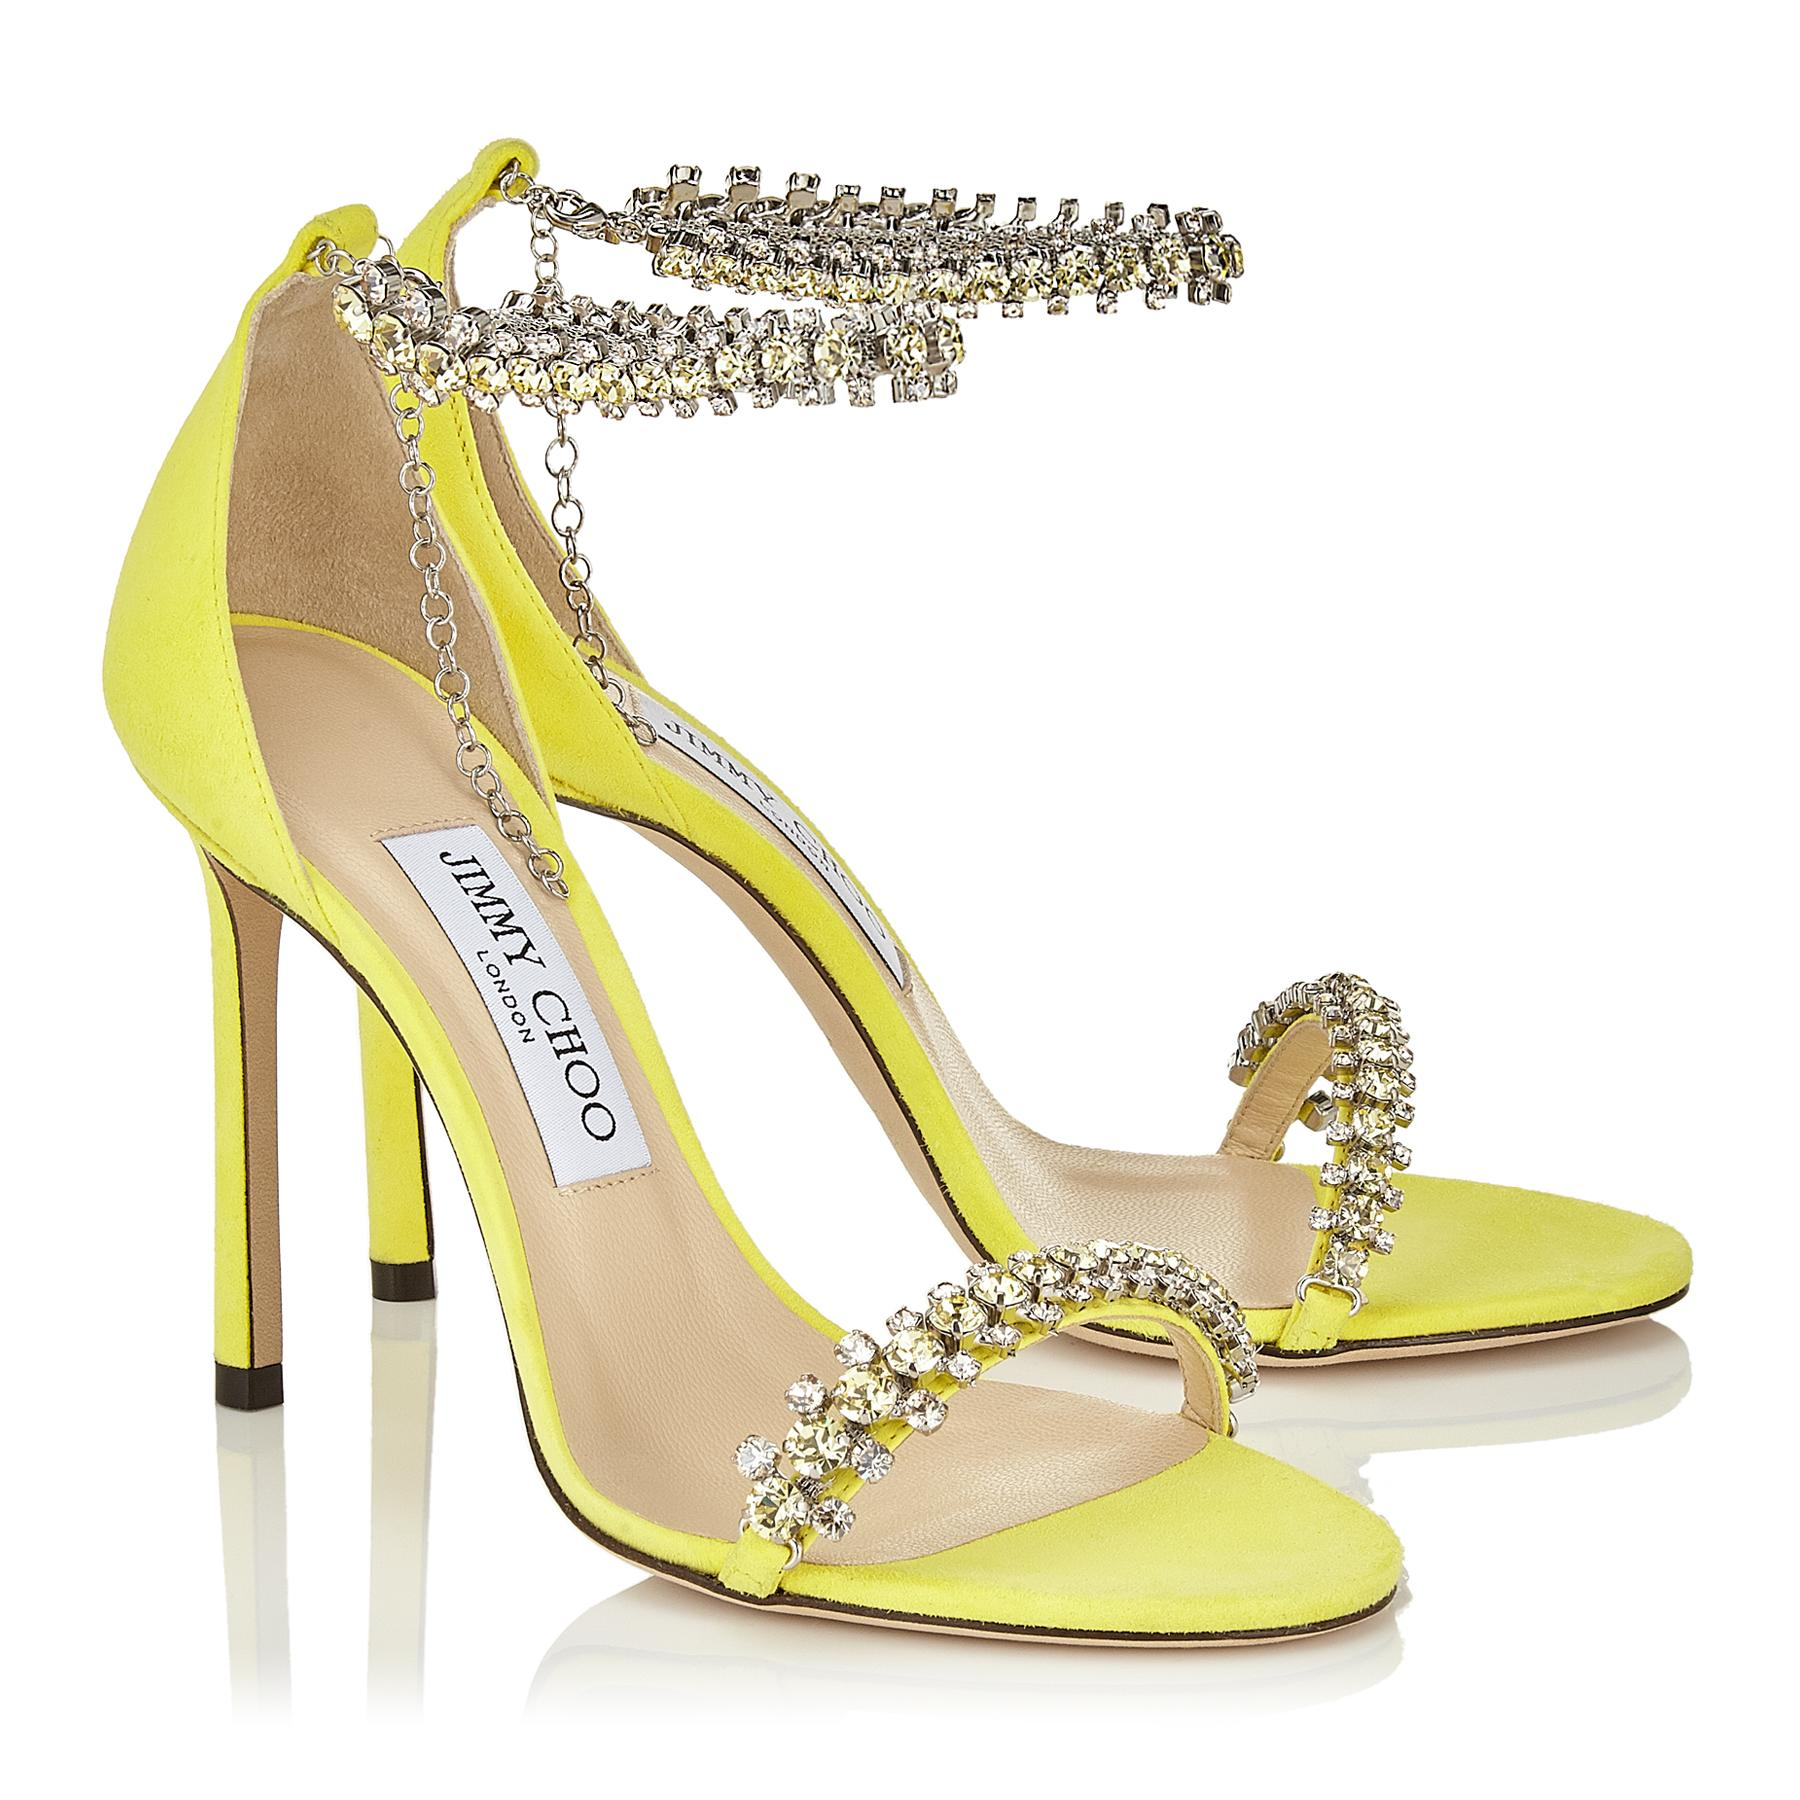 c8a6d6a9fb1c Lyst - Jimmy Choo Shiloh 100 Fluorescent Yellow Suede Open Toe ...